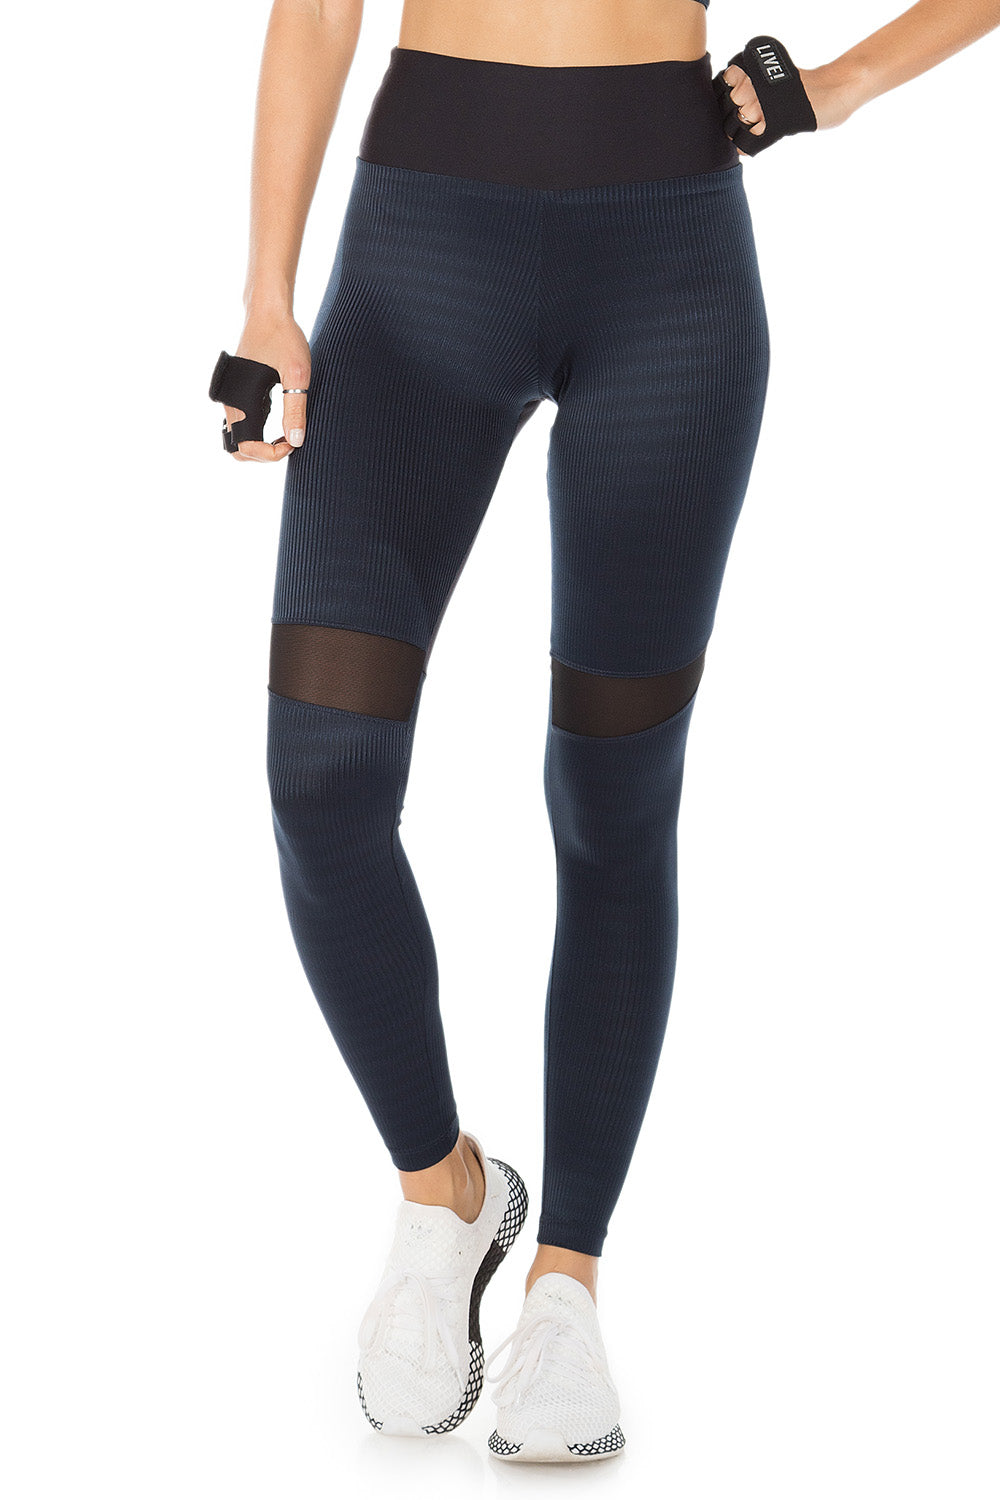 Ultra Evolution Tight 1